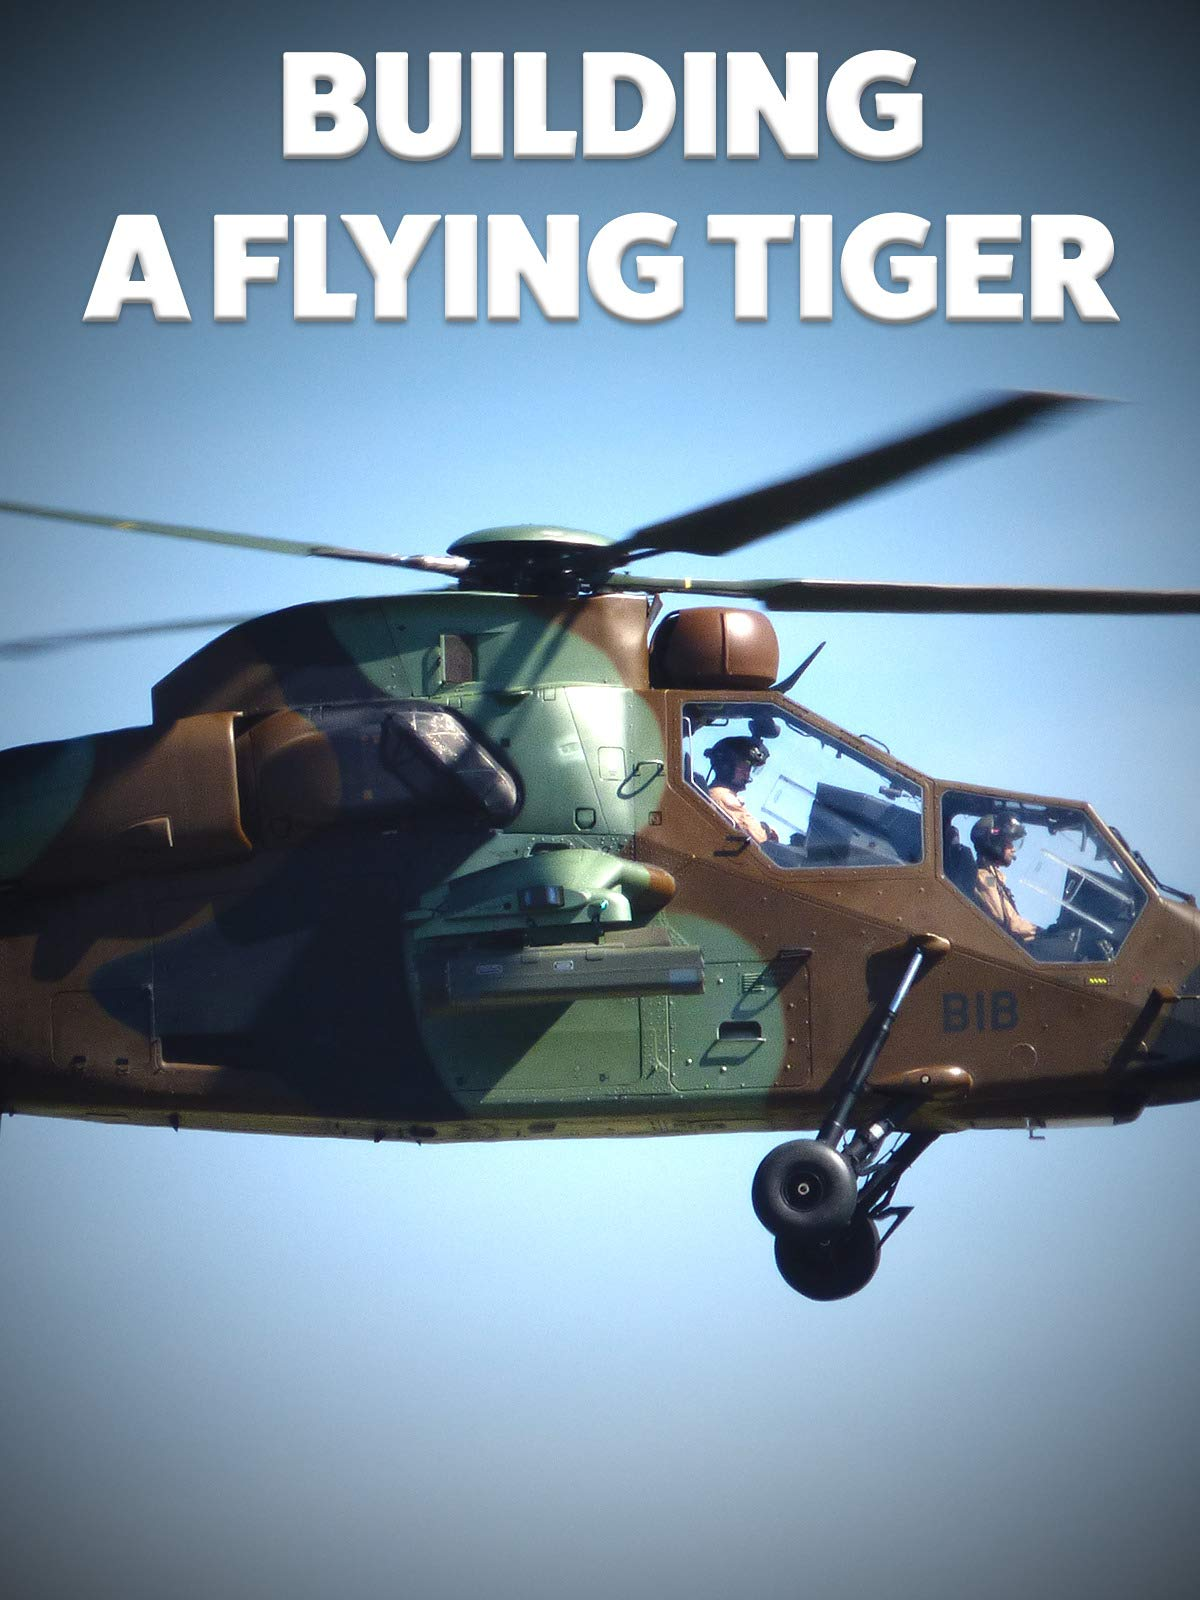 Building a Flying Tiger